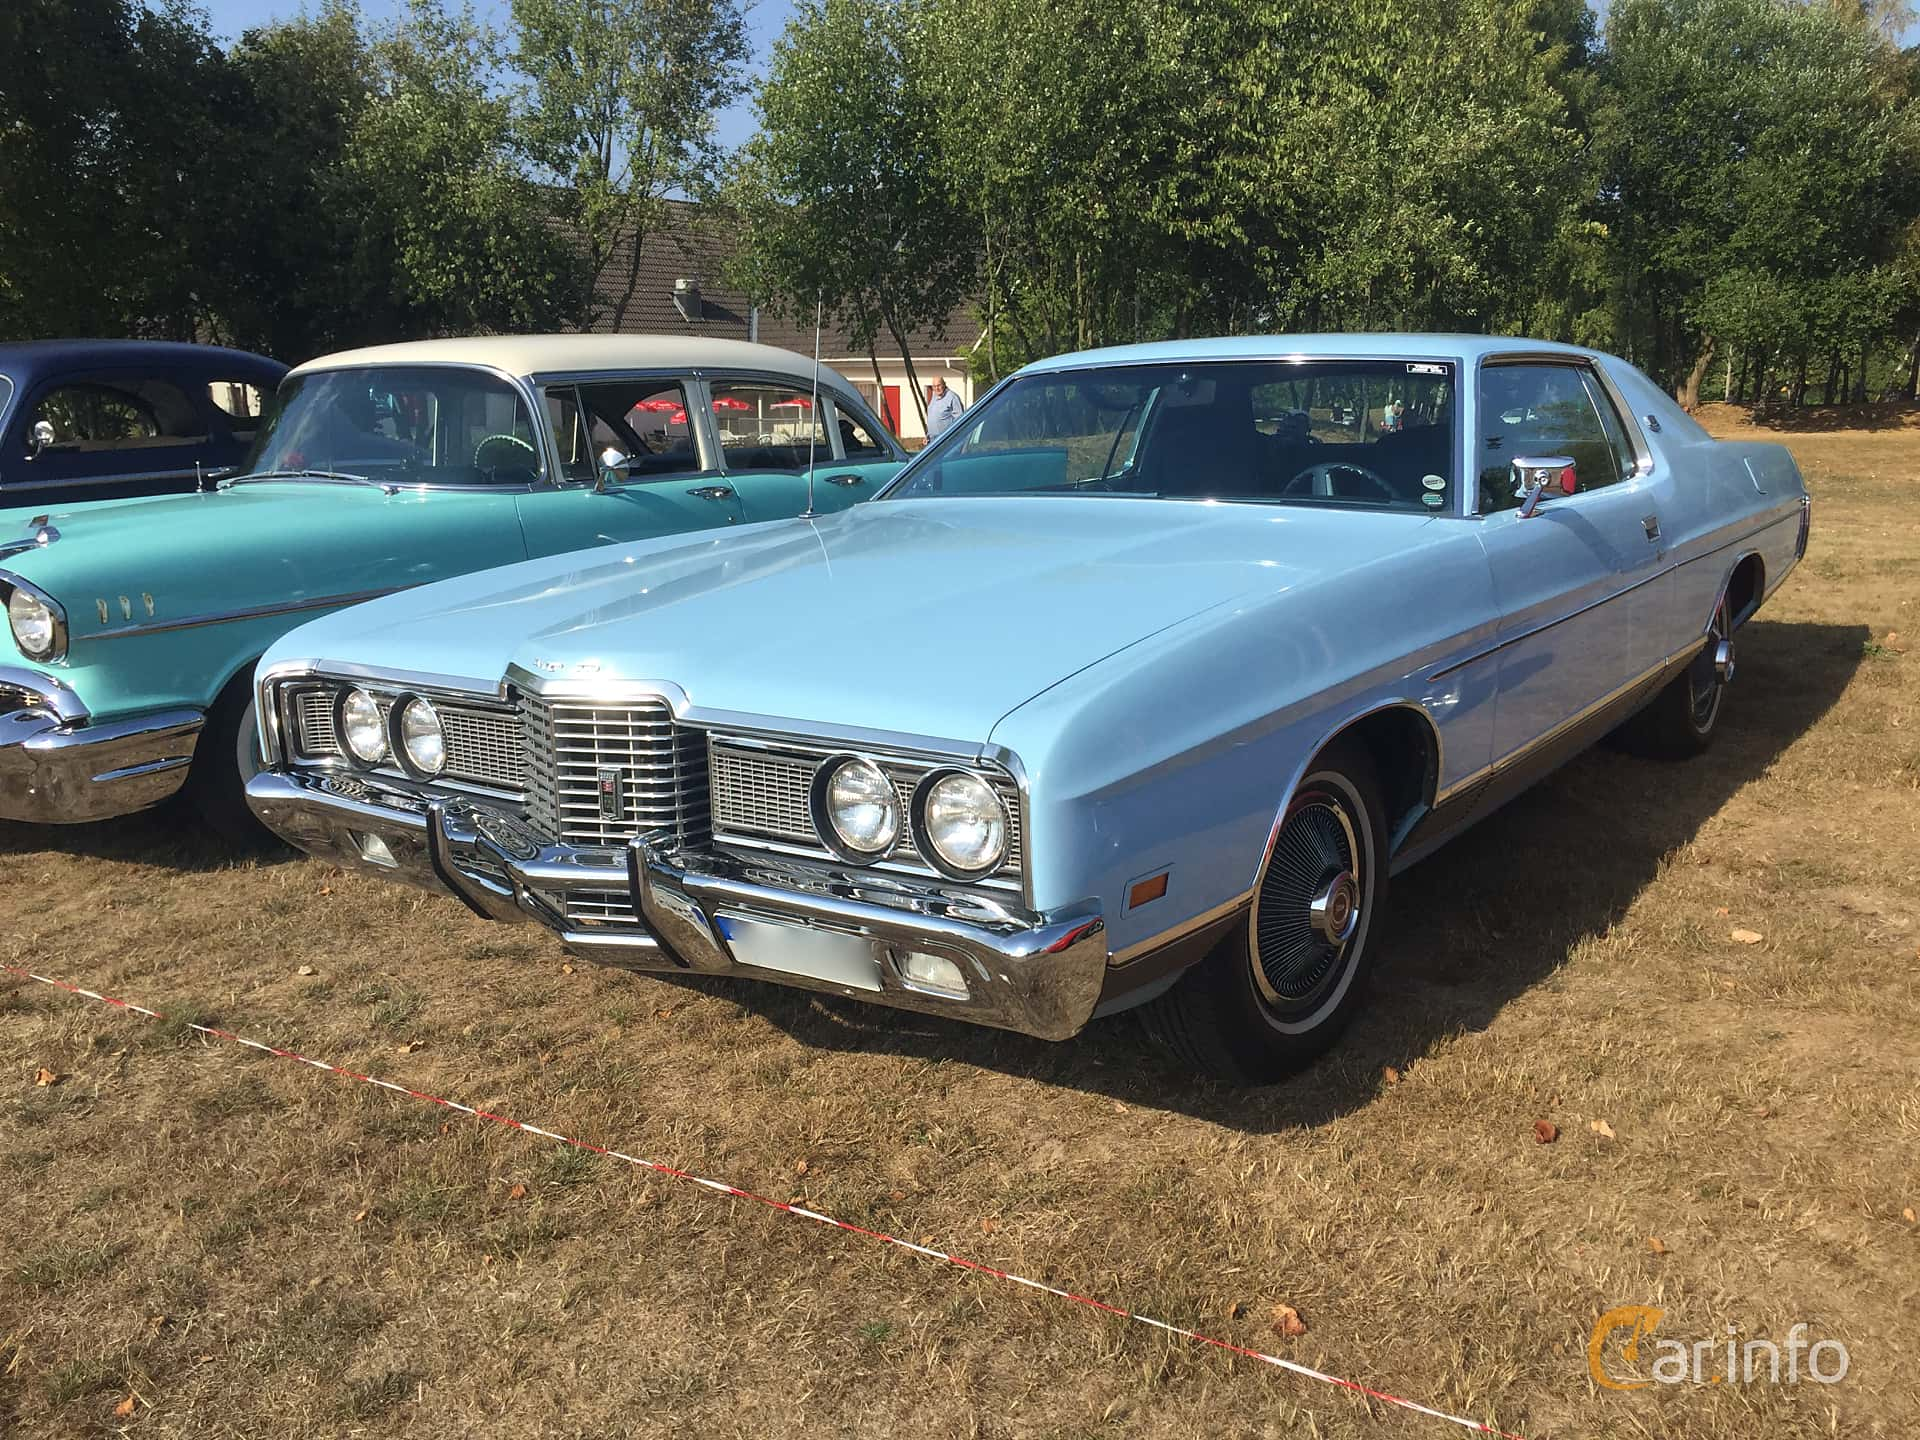 Ford LTD Brougham 2-door Hardtop 7.0 V8 Automatic, 215hp, 1972 at Eddys bilträff Augusti 2018